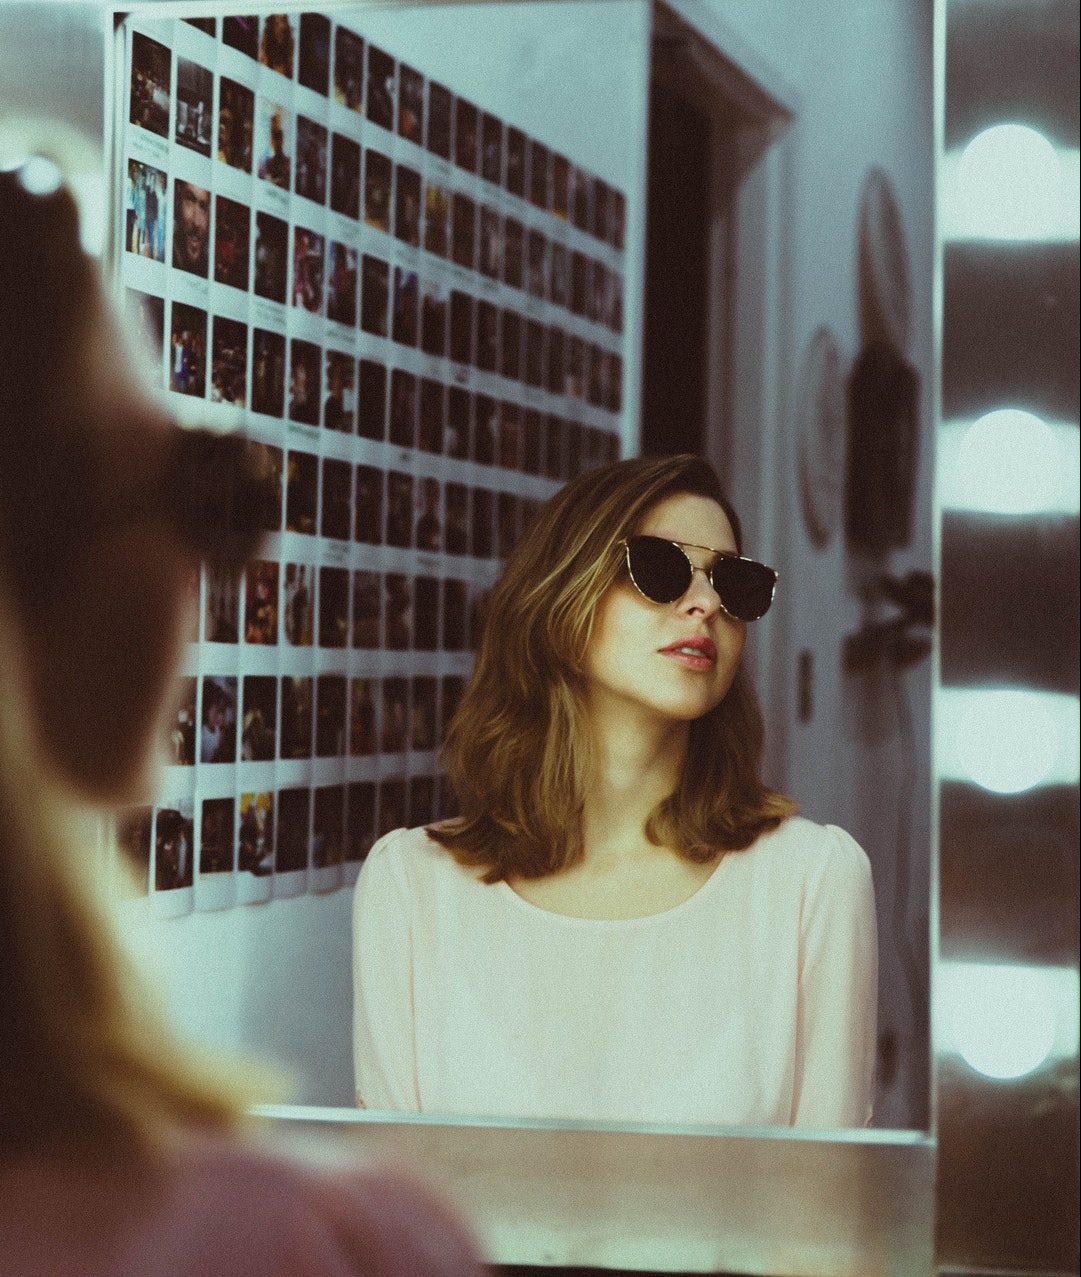 13 Signs You're More Self-Aware Than You Think